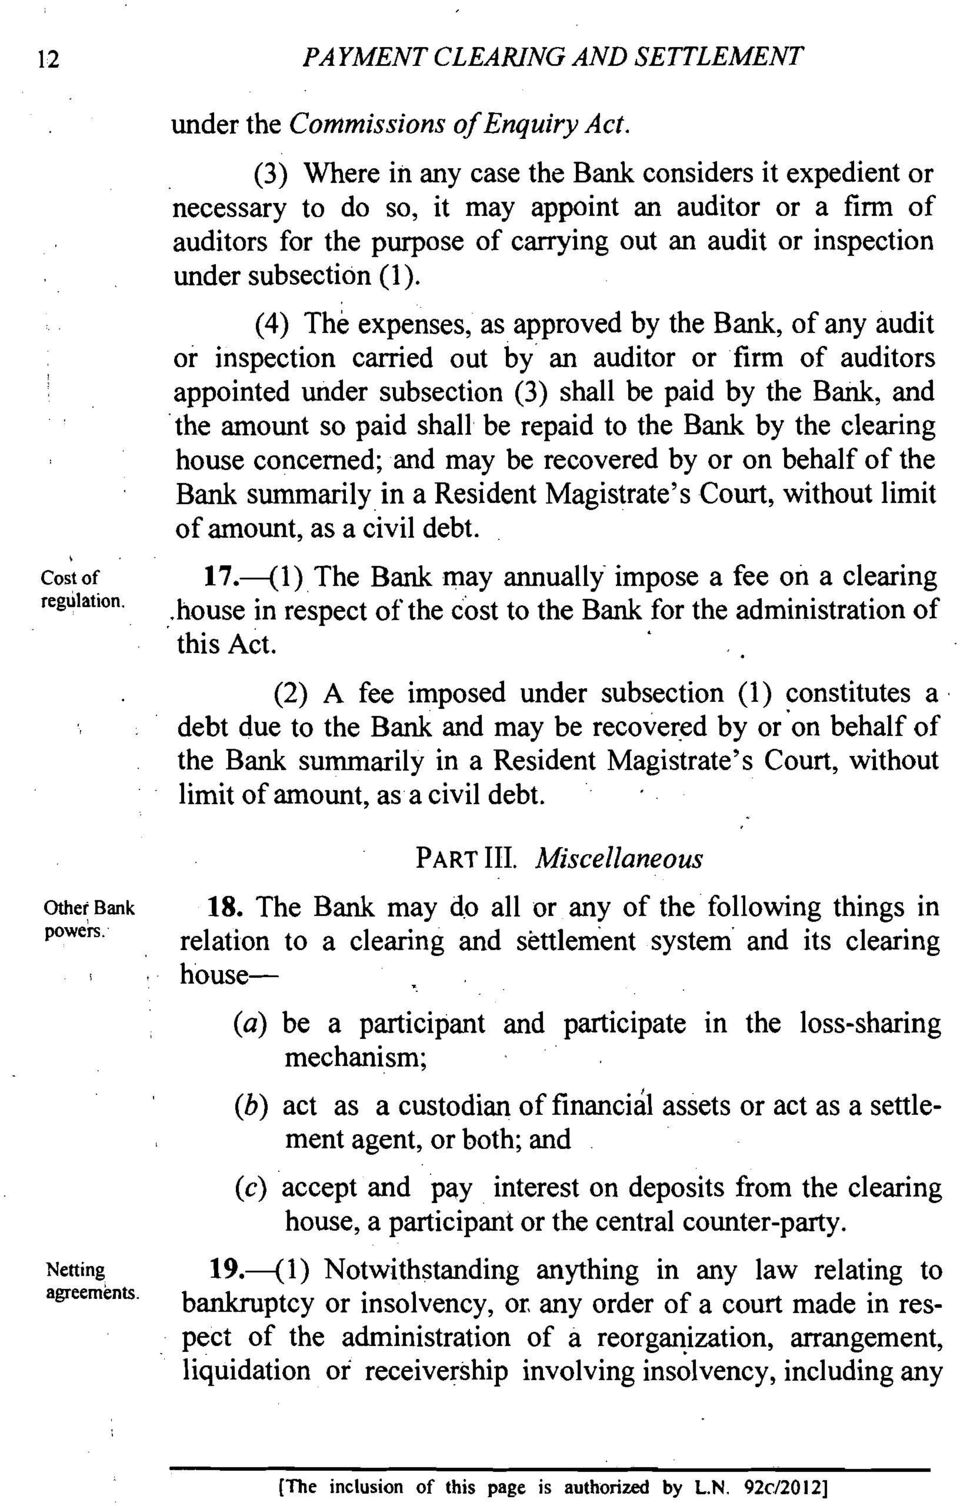 (1). (4) The expenses, as approved by the Bank, of any audit or inspection carried out by an auditor or firm of auditors appointed under subsection (3) shall be paid by the Bank, and the amount so